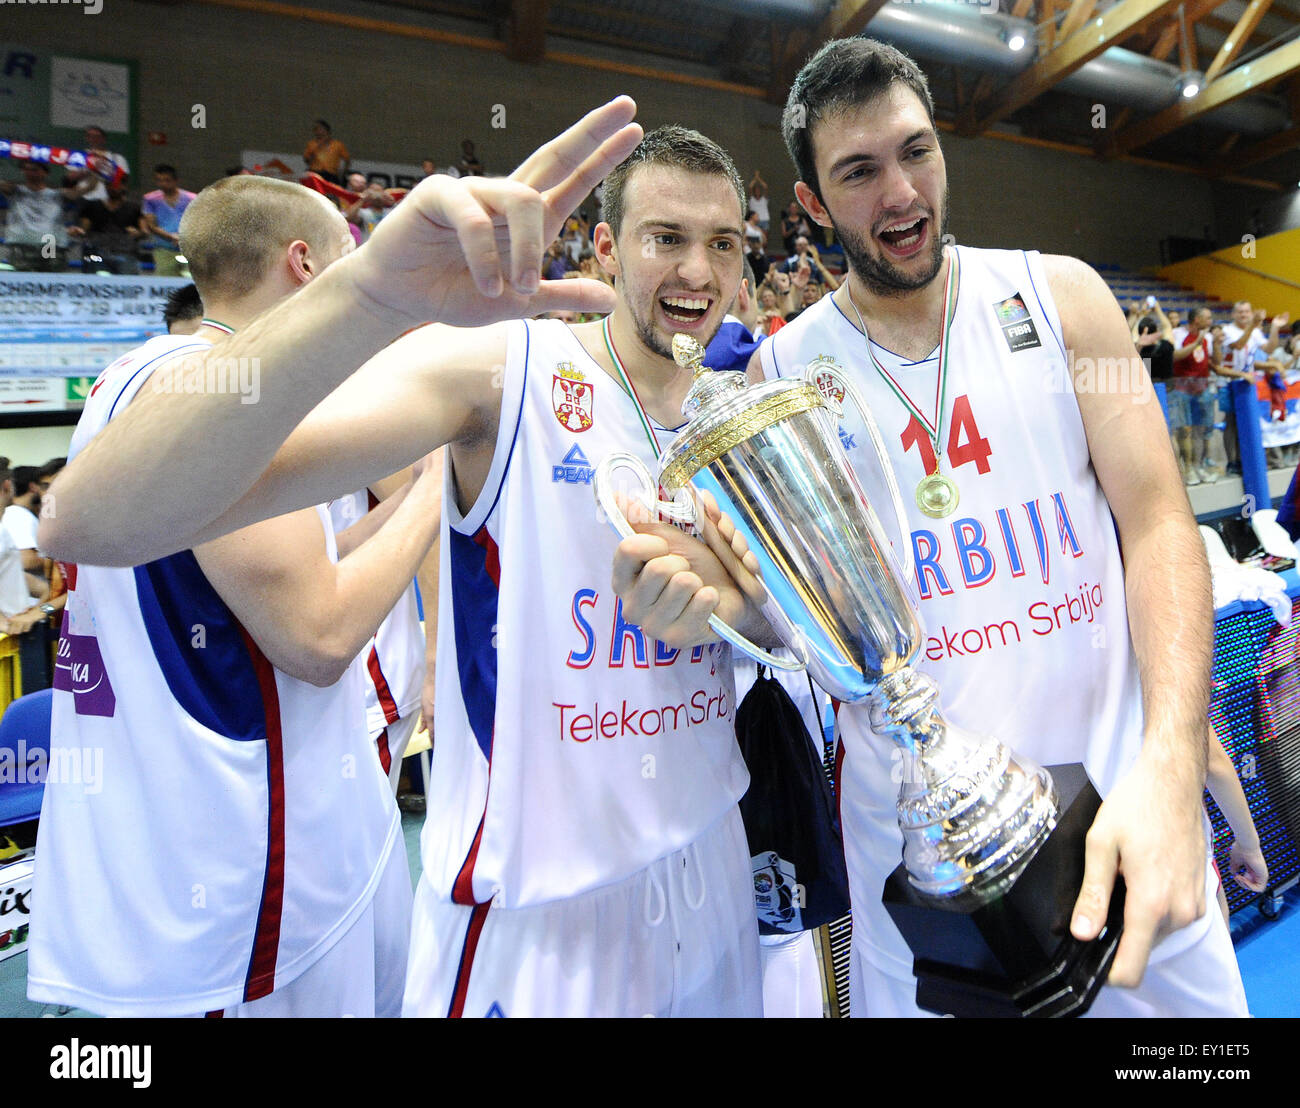 Lignano, Italy. 19th July, 2015. Marko Guduric (SRB) and Djoko Salic (SRB) celebrating the Serbia victory of U20 - Stock Image